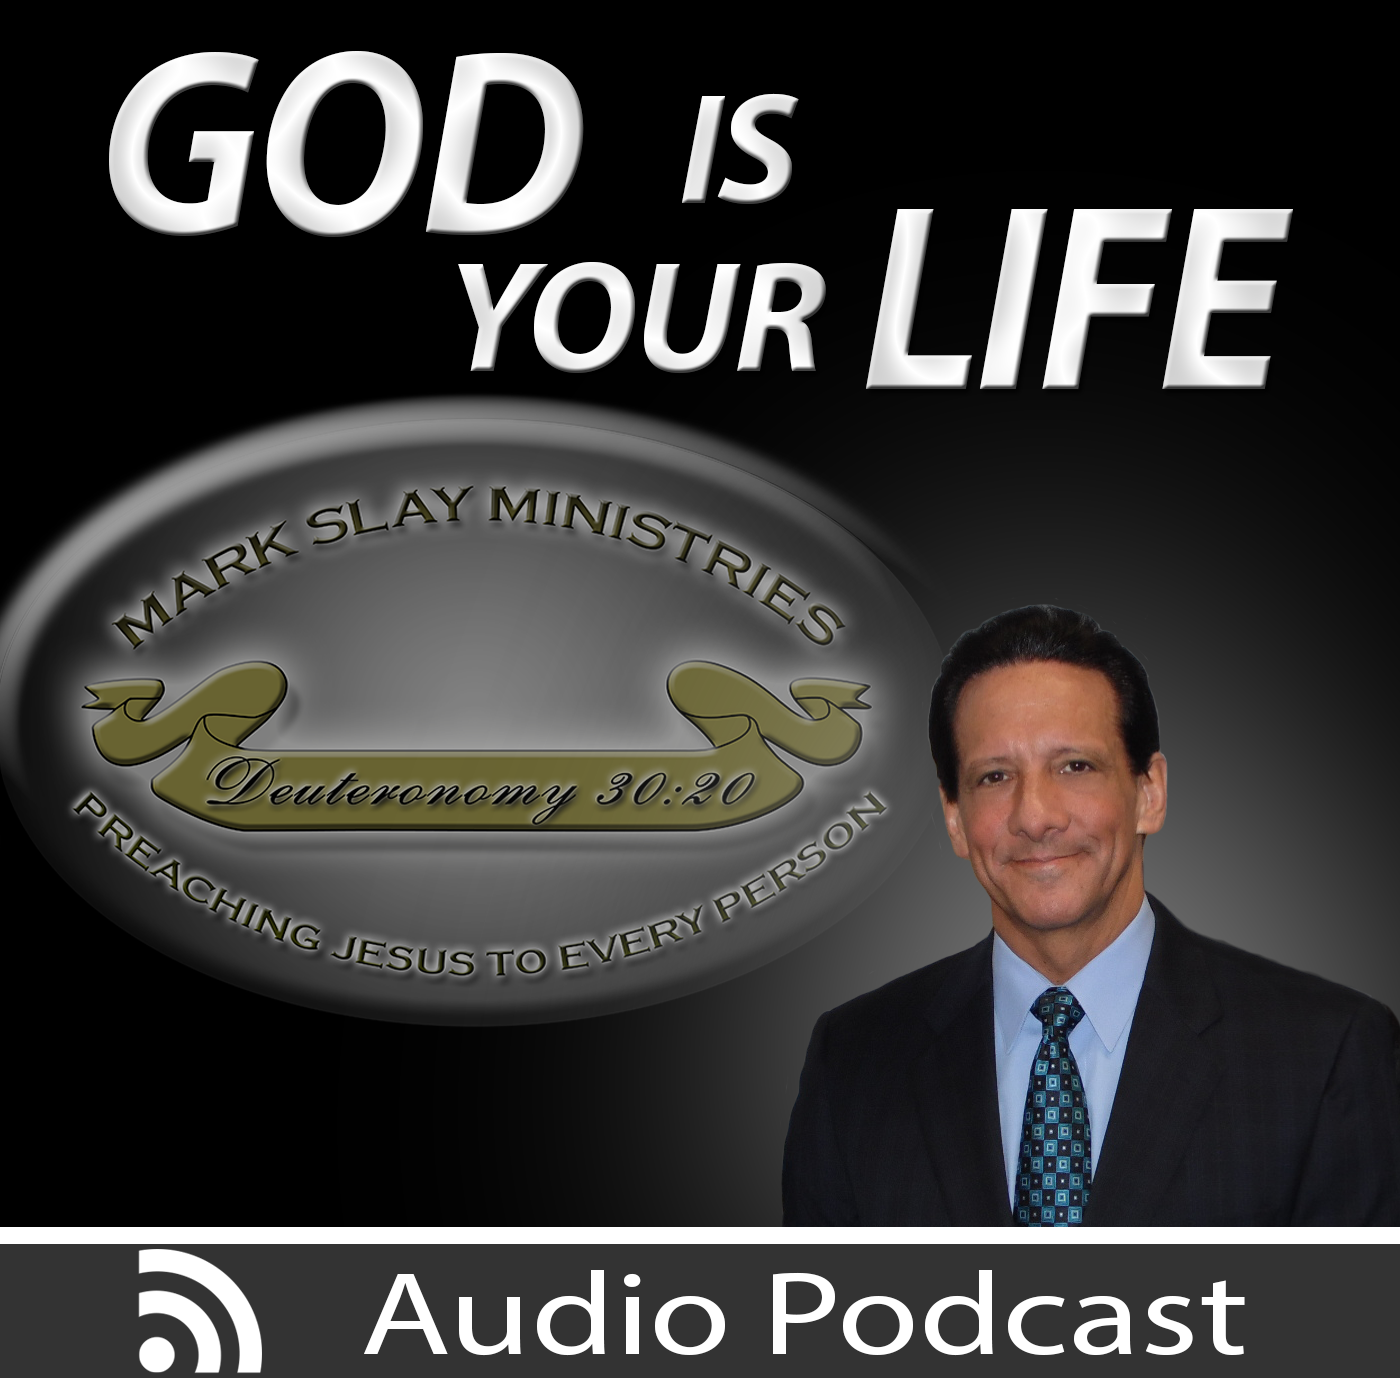 God Is Your Life Broadcast